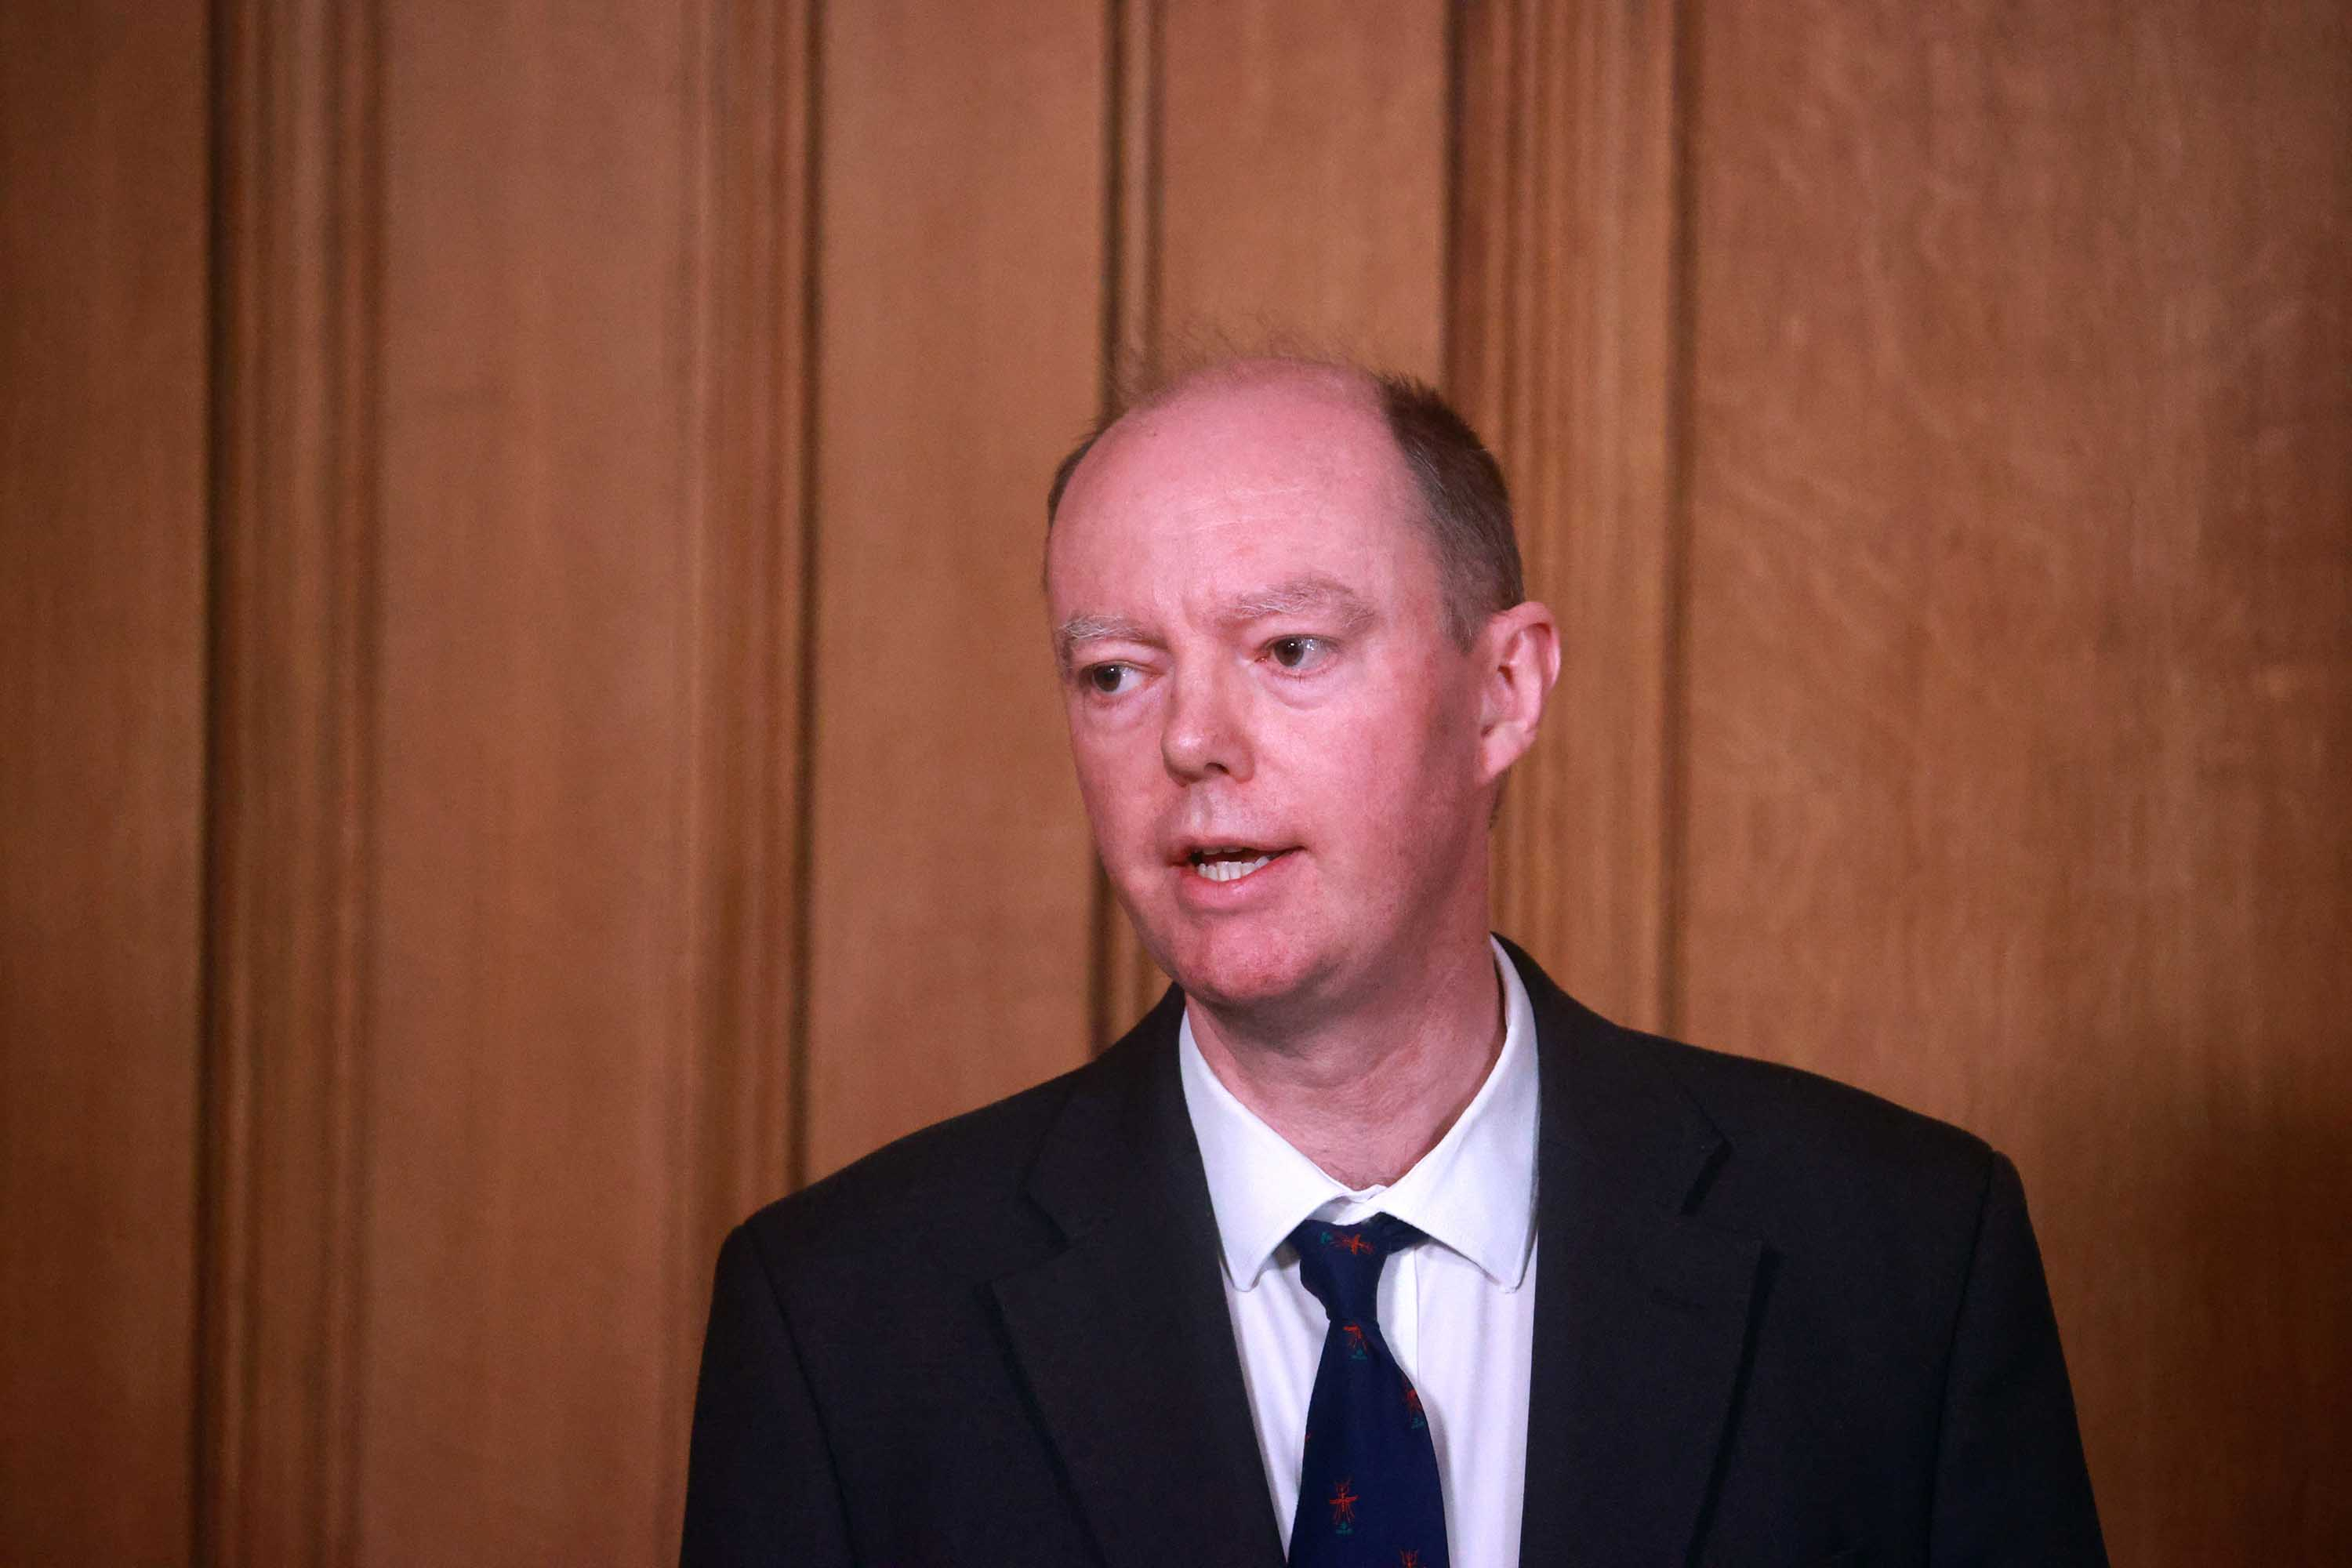 Chris Whitty, the Chief Medical Officer for England, attends a news conference at 10 Downing Street in London, on January 5.